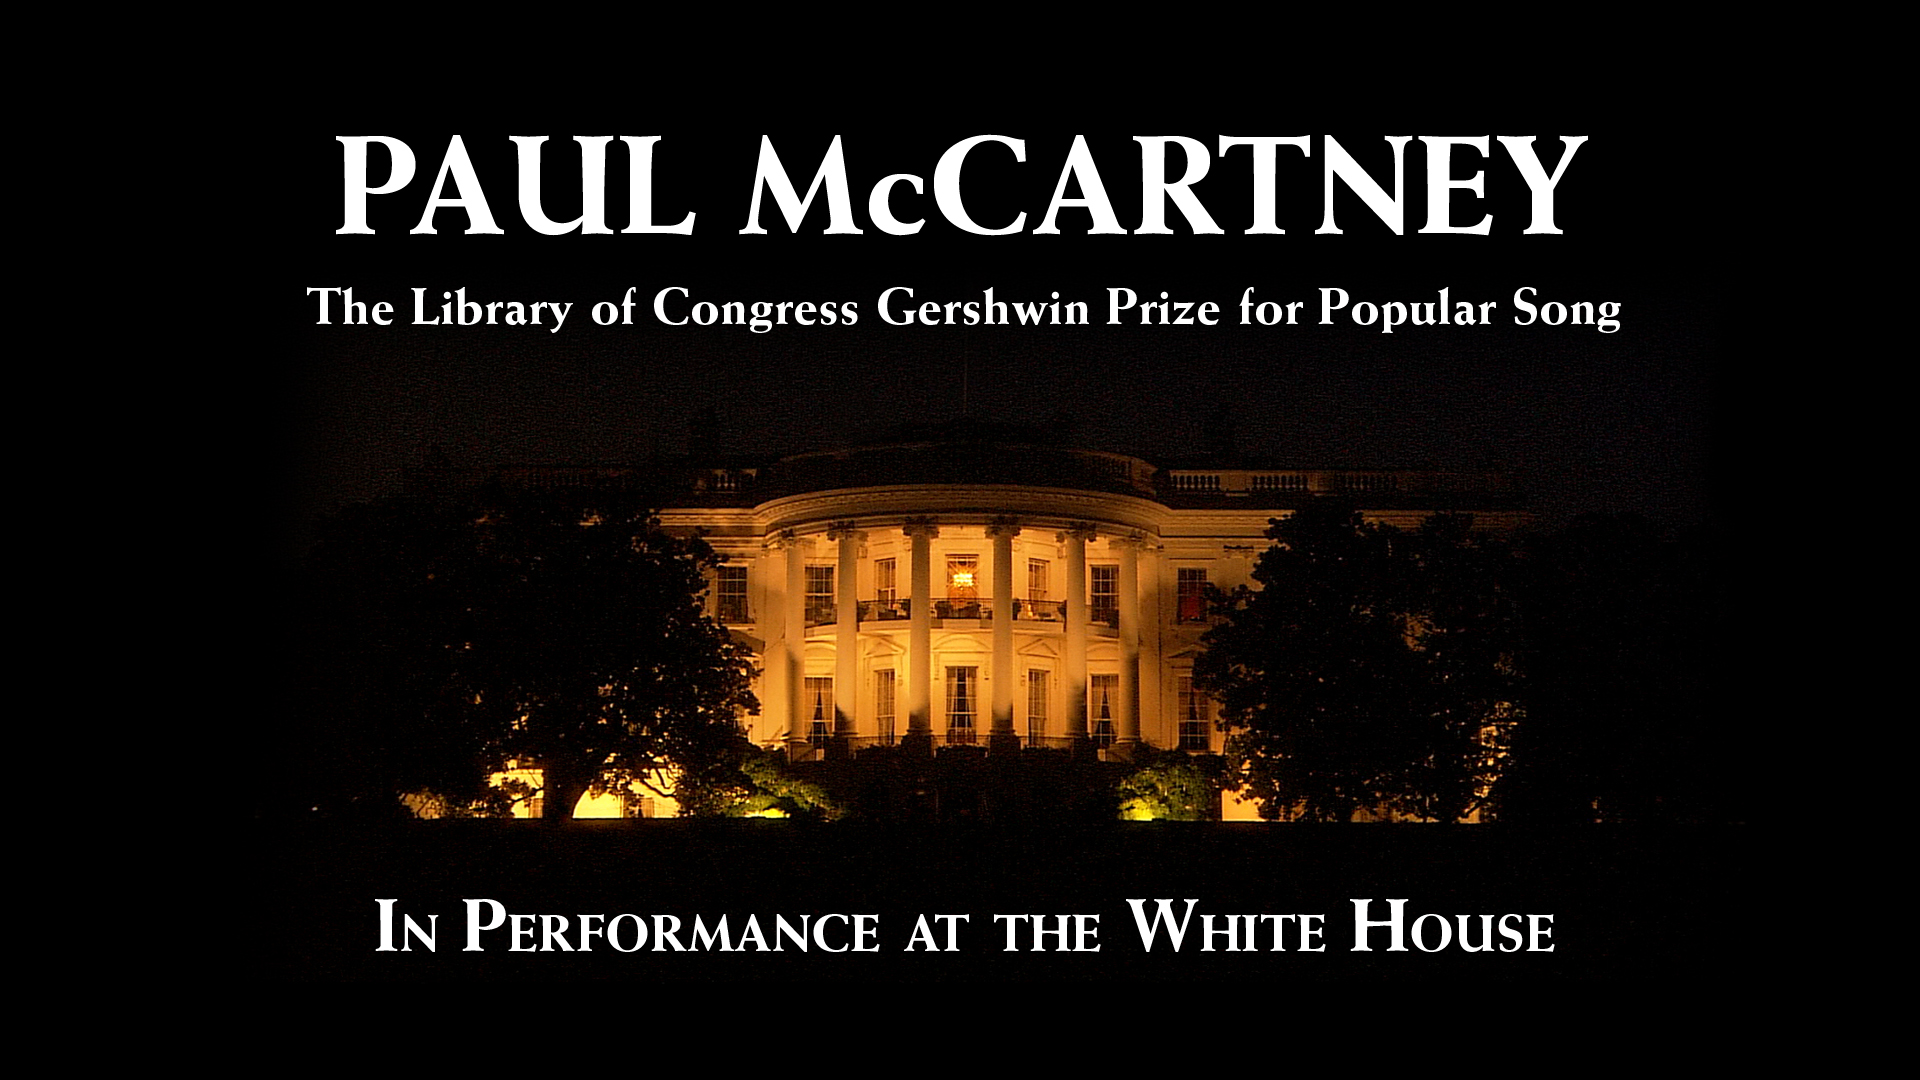 Shows in performance at the white house pbs for Performance house